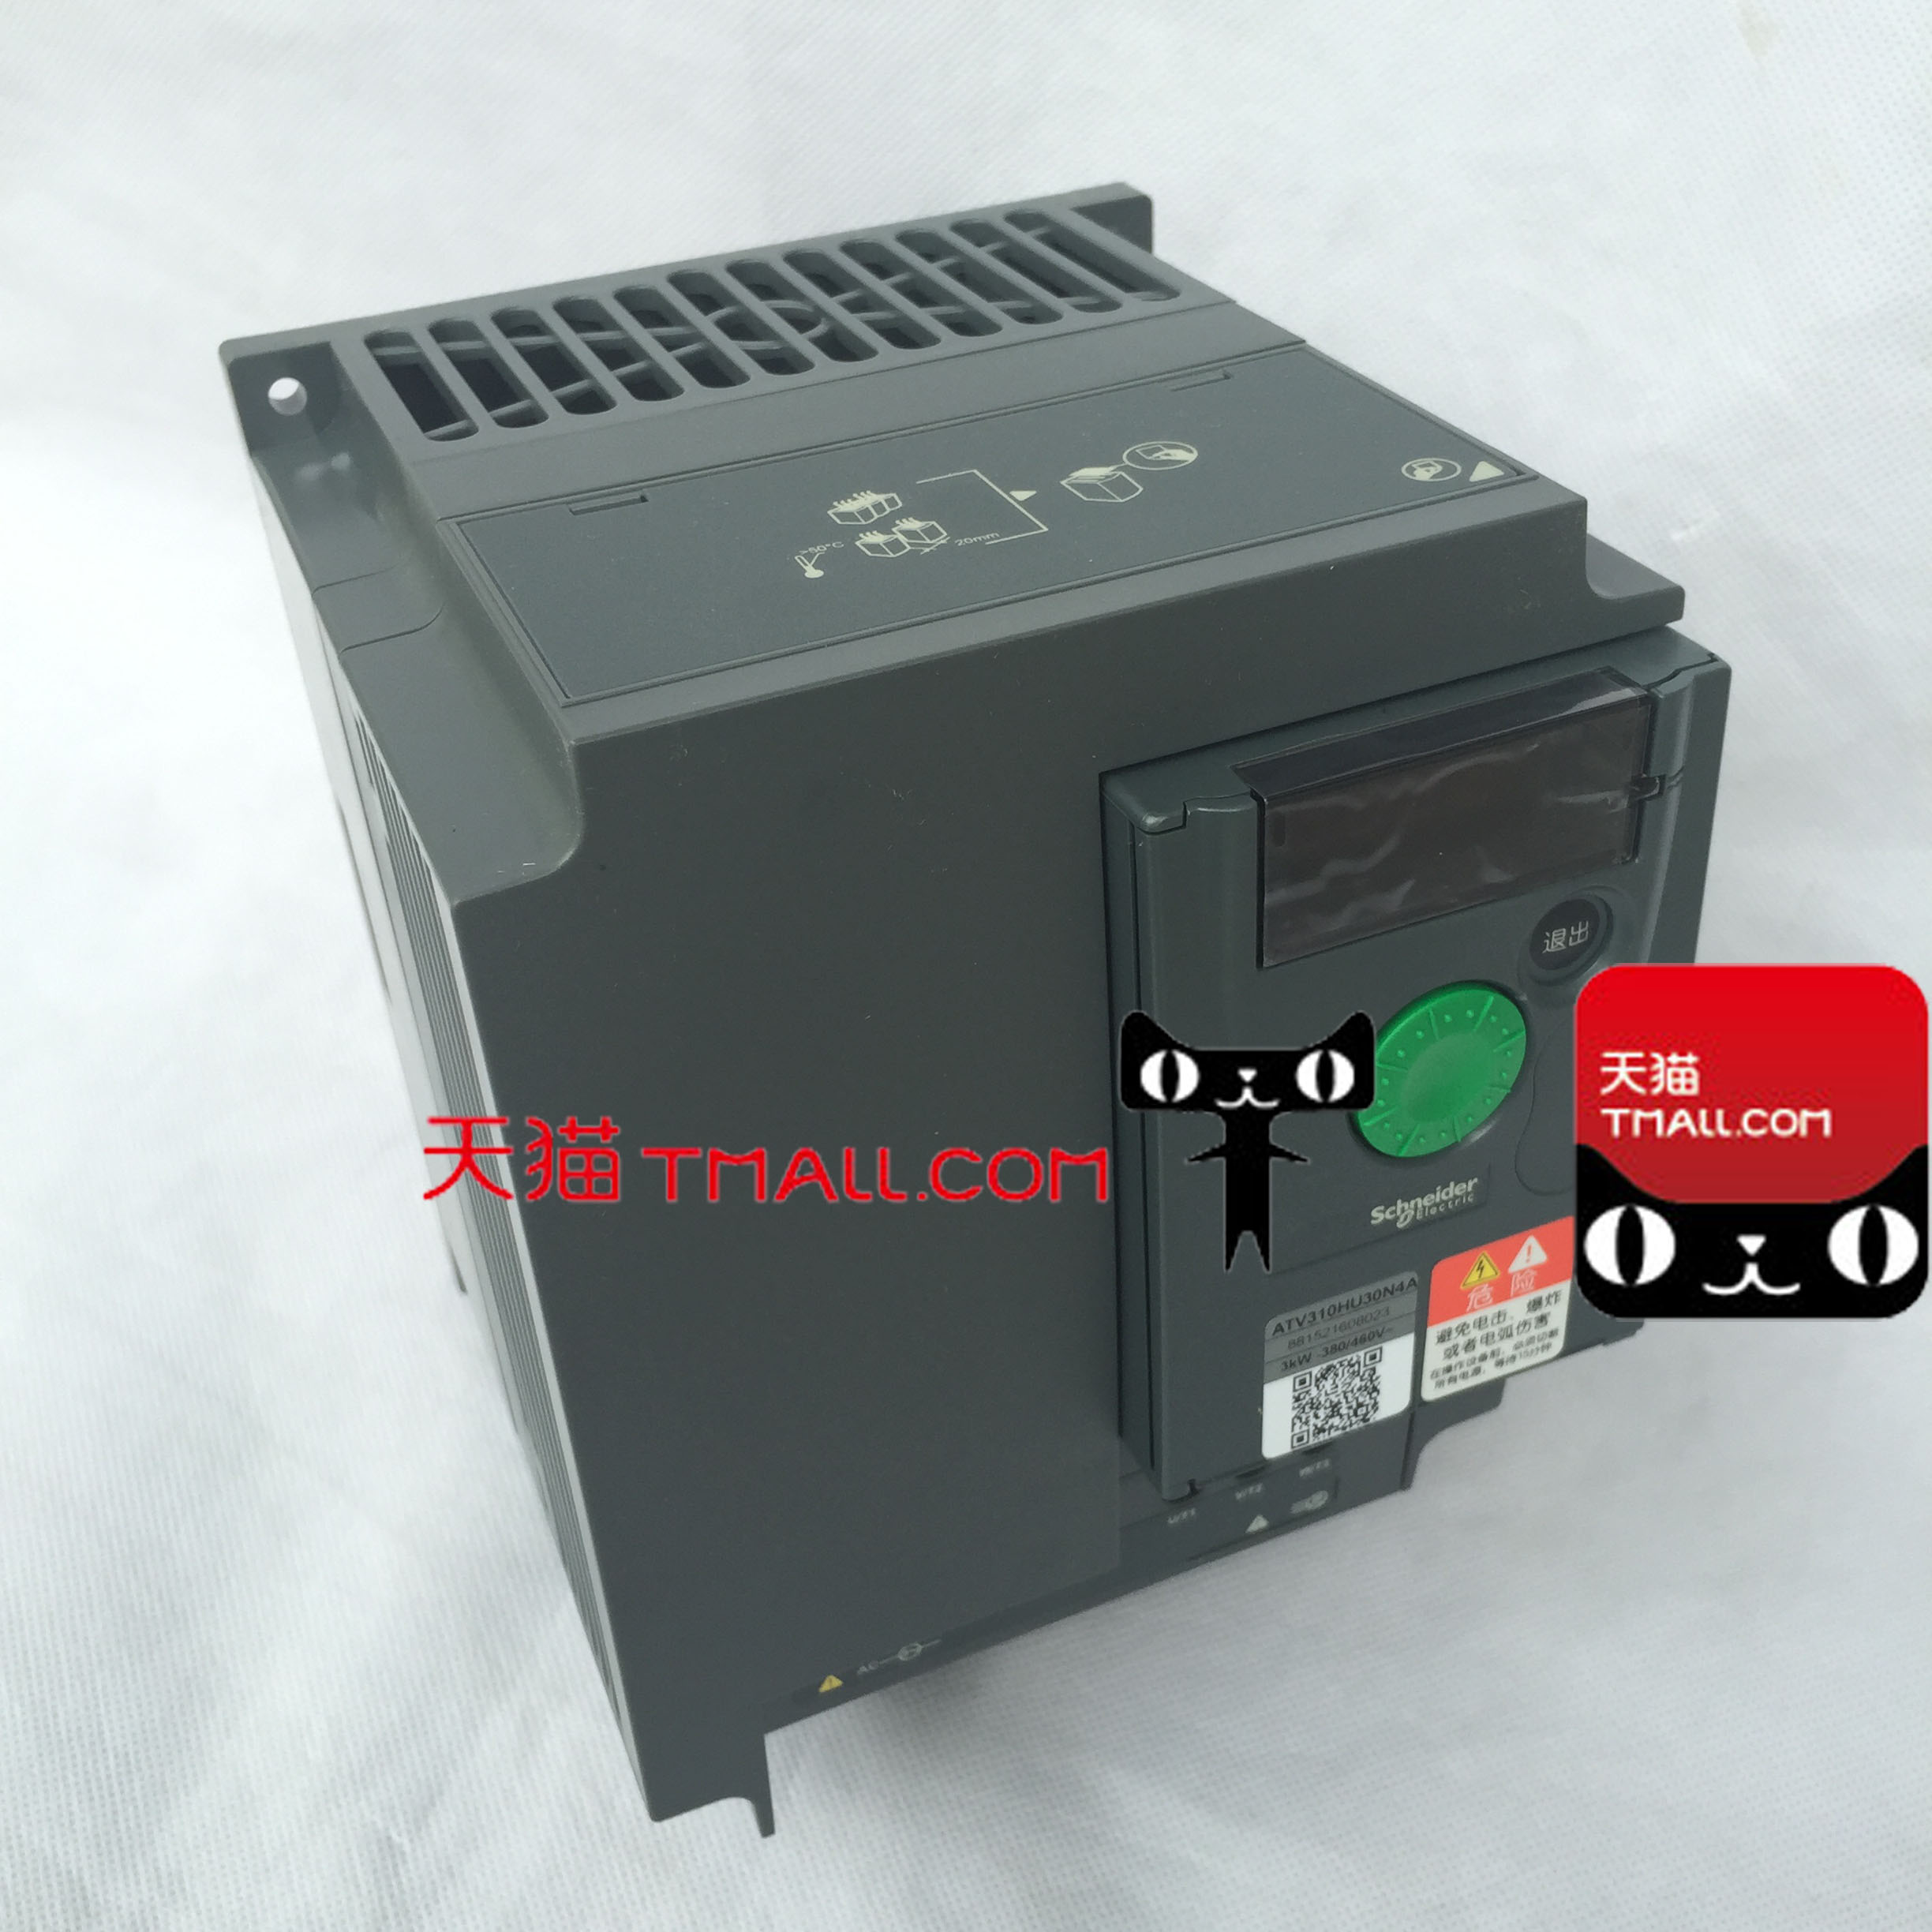 Original schneider inverter inverter 11kw ATV310HD11N4 mms-24a ATV303 to replace the new